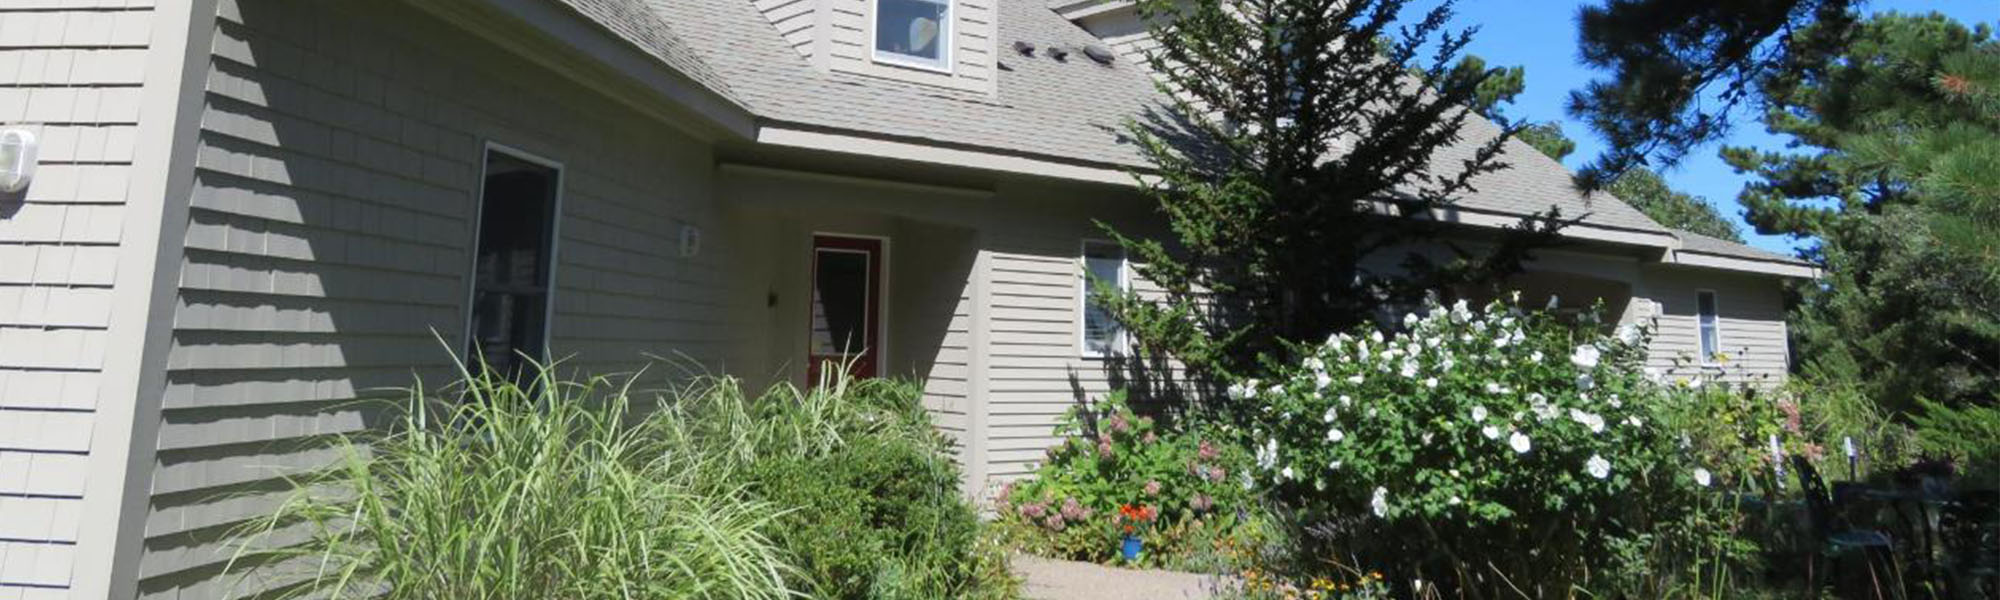 An affordable romantic bed and breakfast in Wellfleet, MA